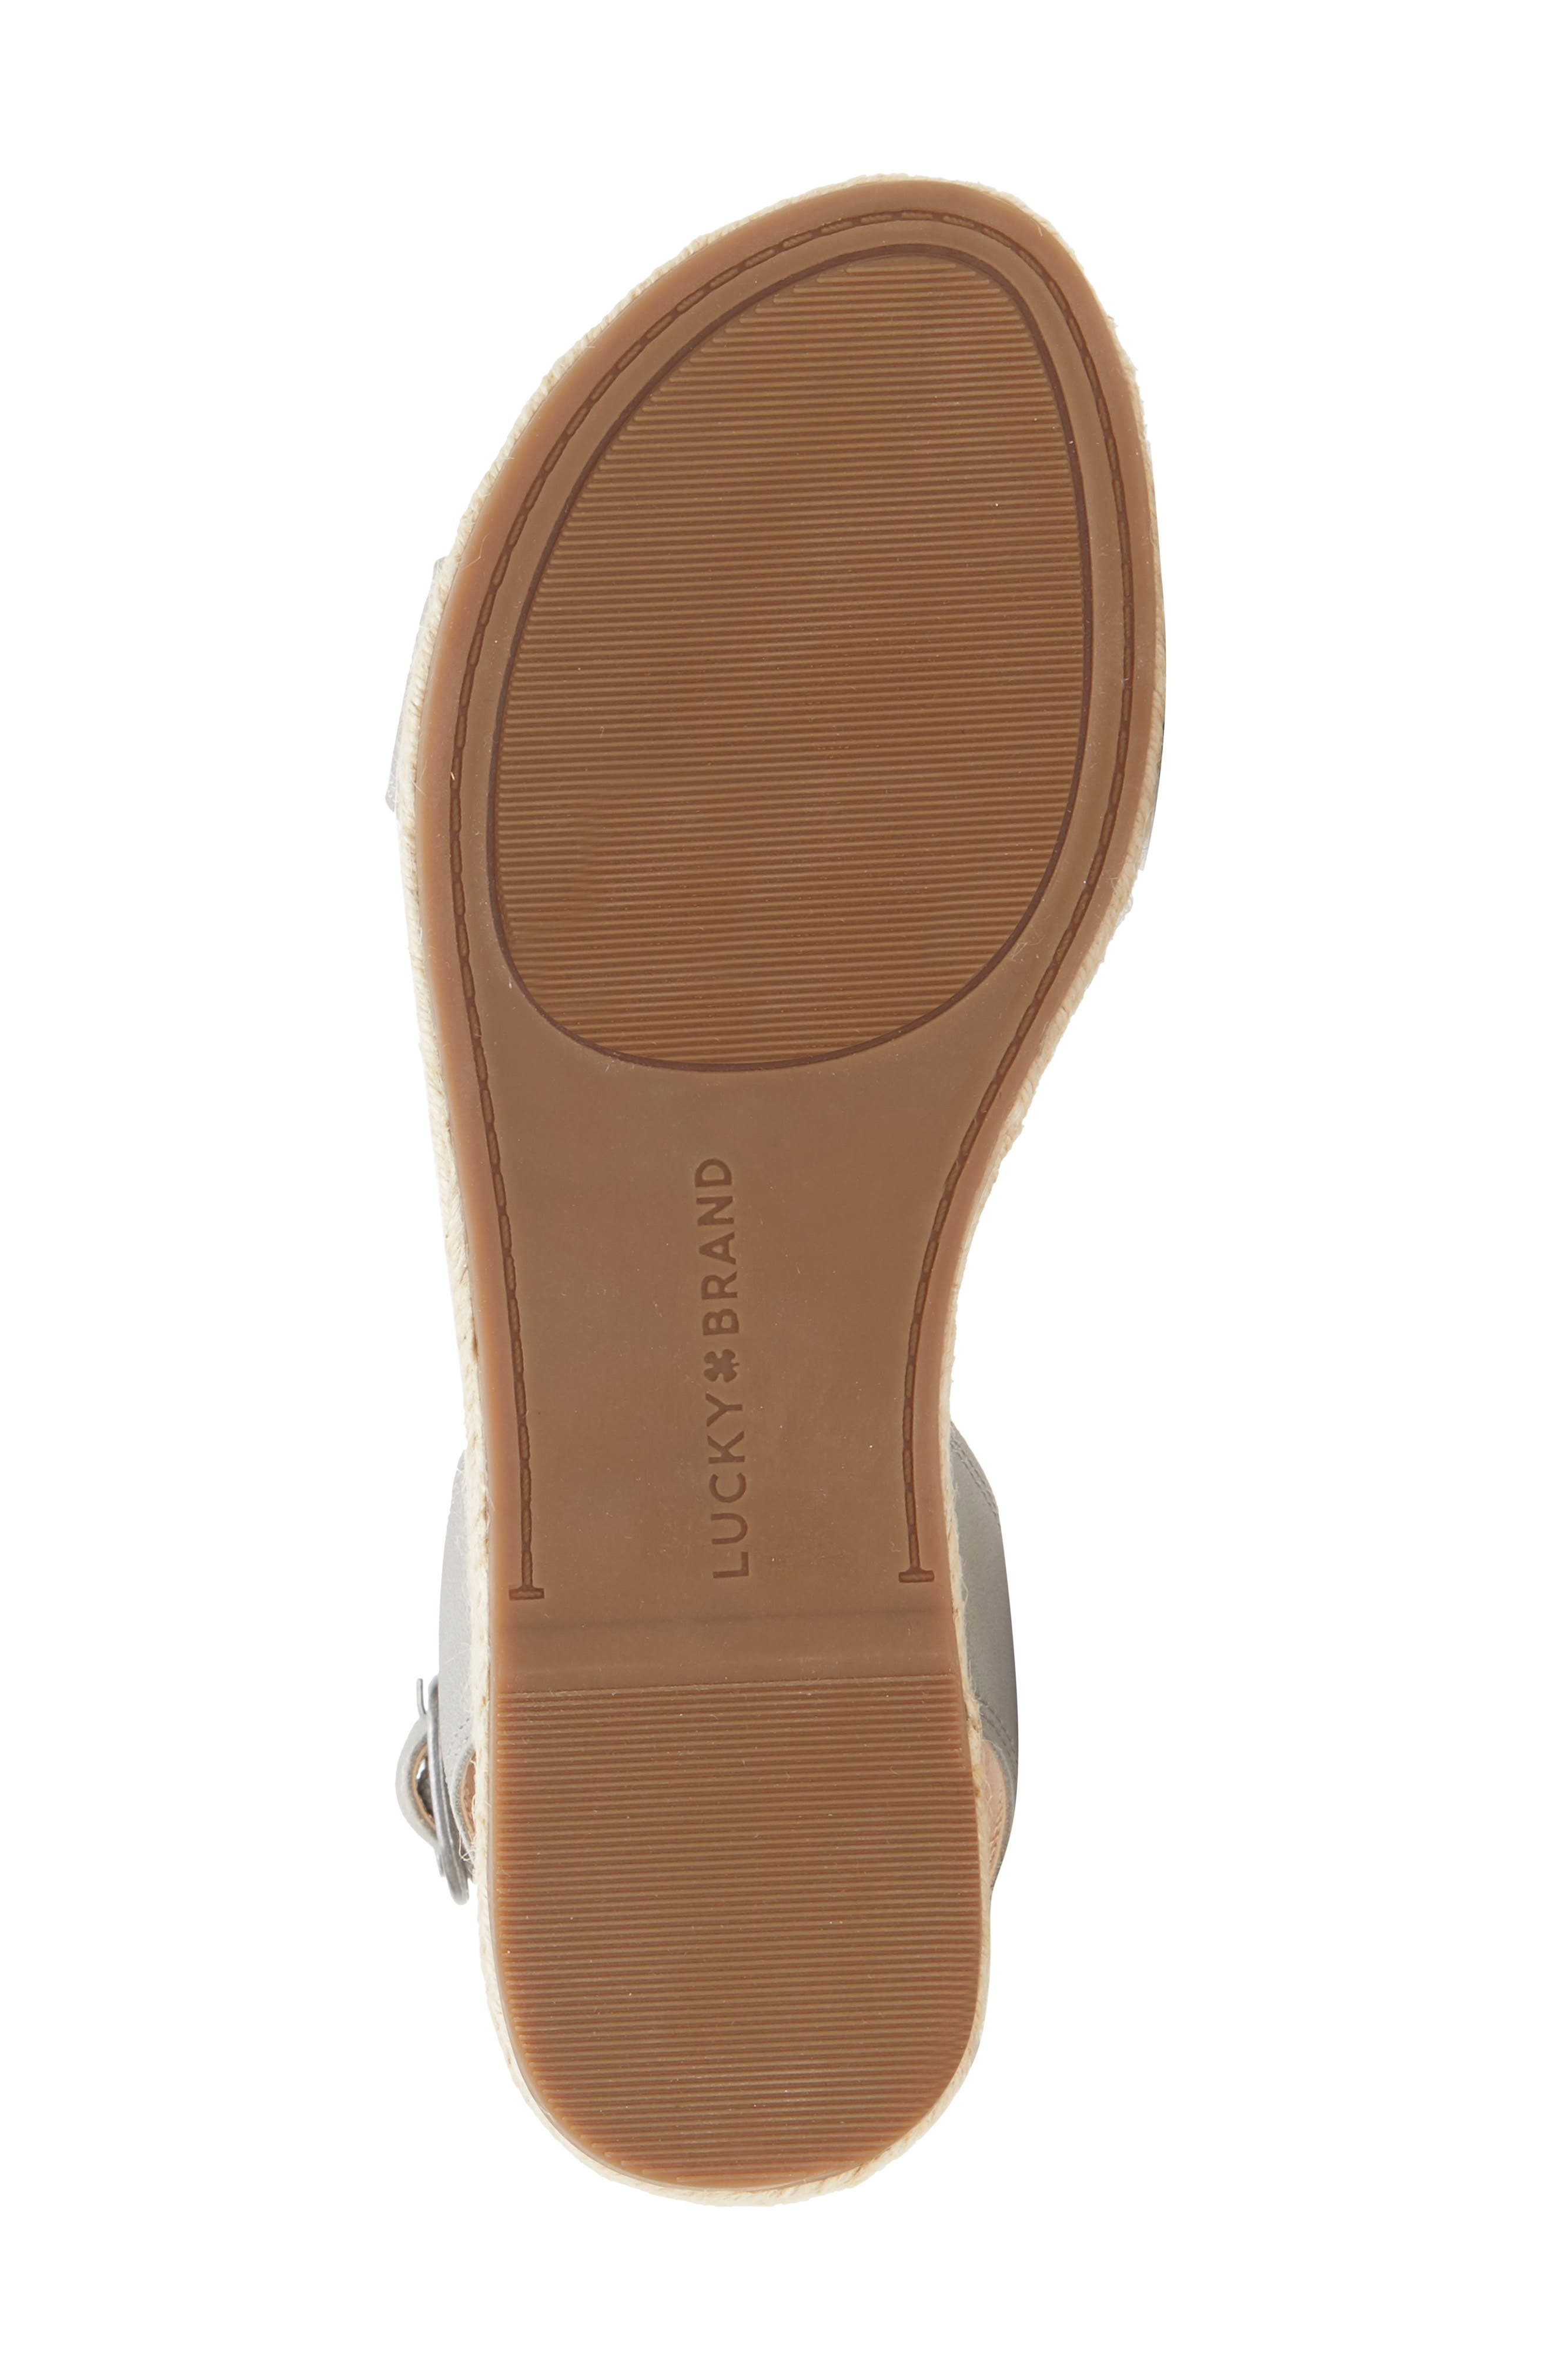 LUCKY BRAND, Garston Espadrille Sandal, Alternate thumbnail 6, color, CHINCHILLA LEATHER